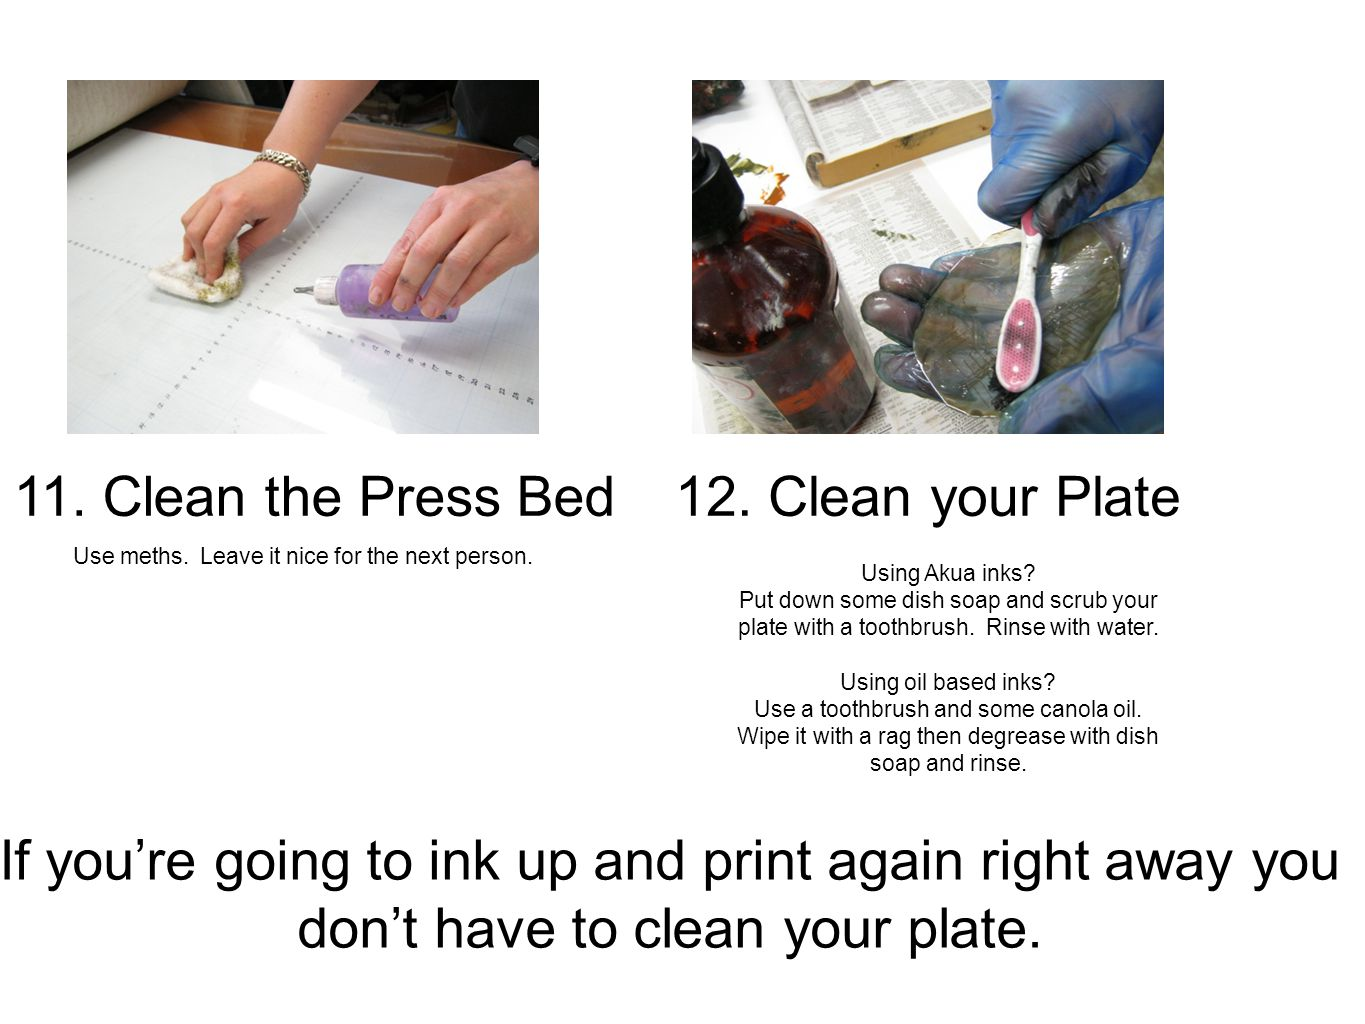 11. Clean the Press Bed Use meths. Leave it nice for the next person.